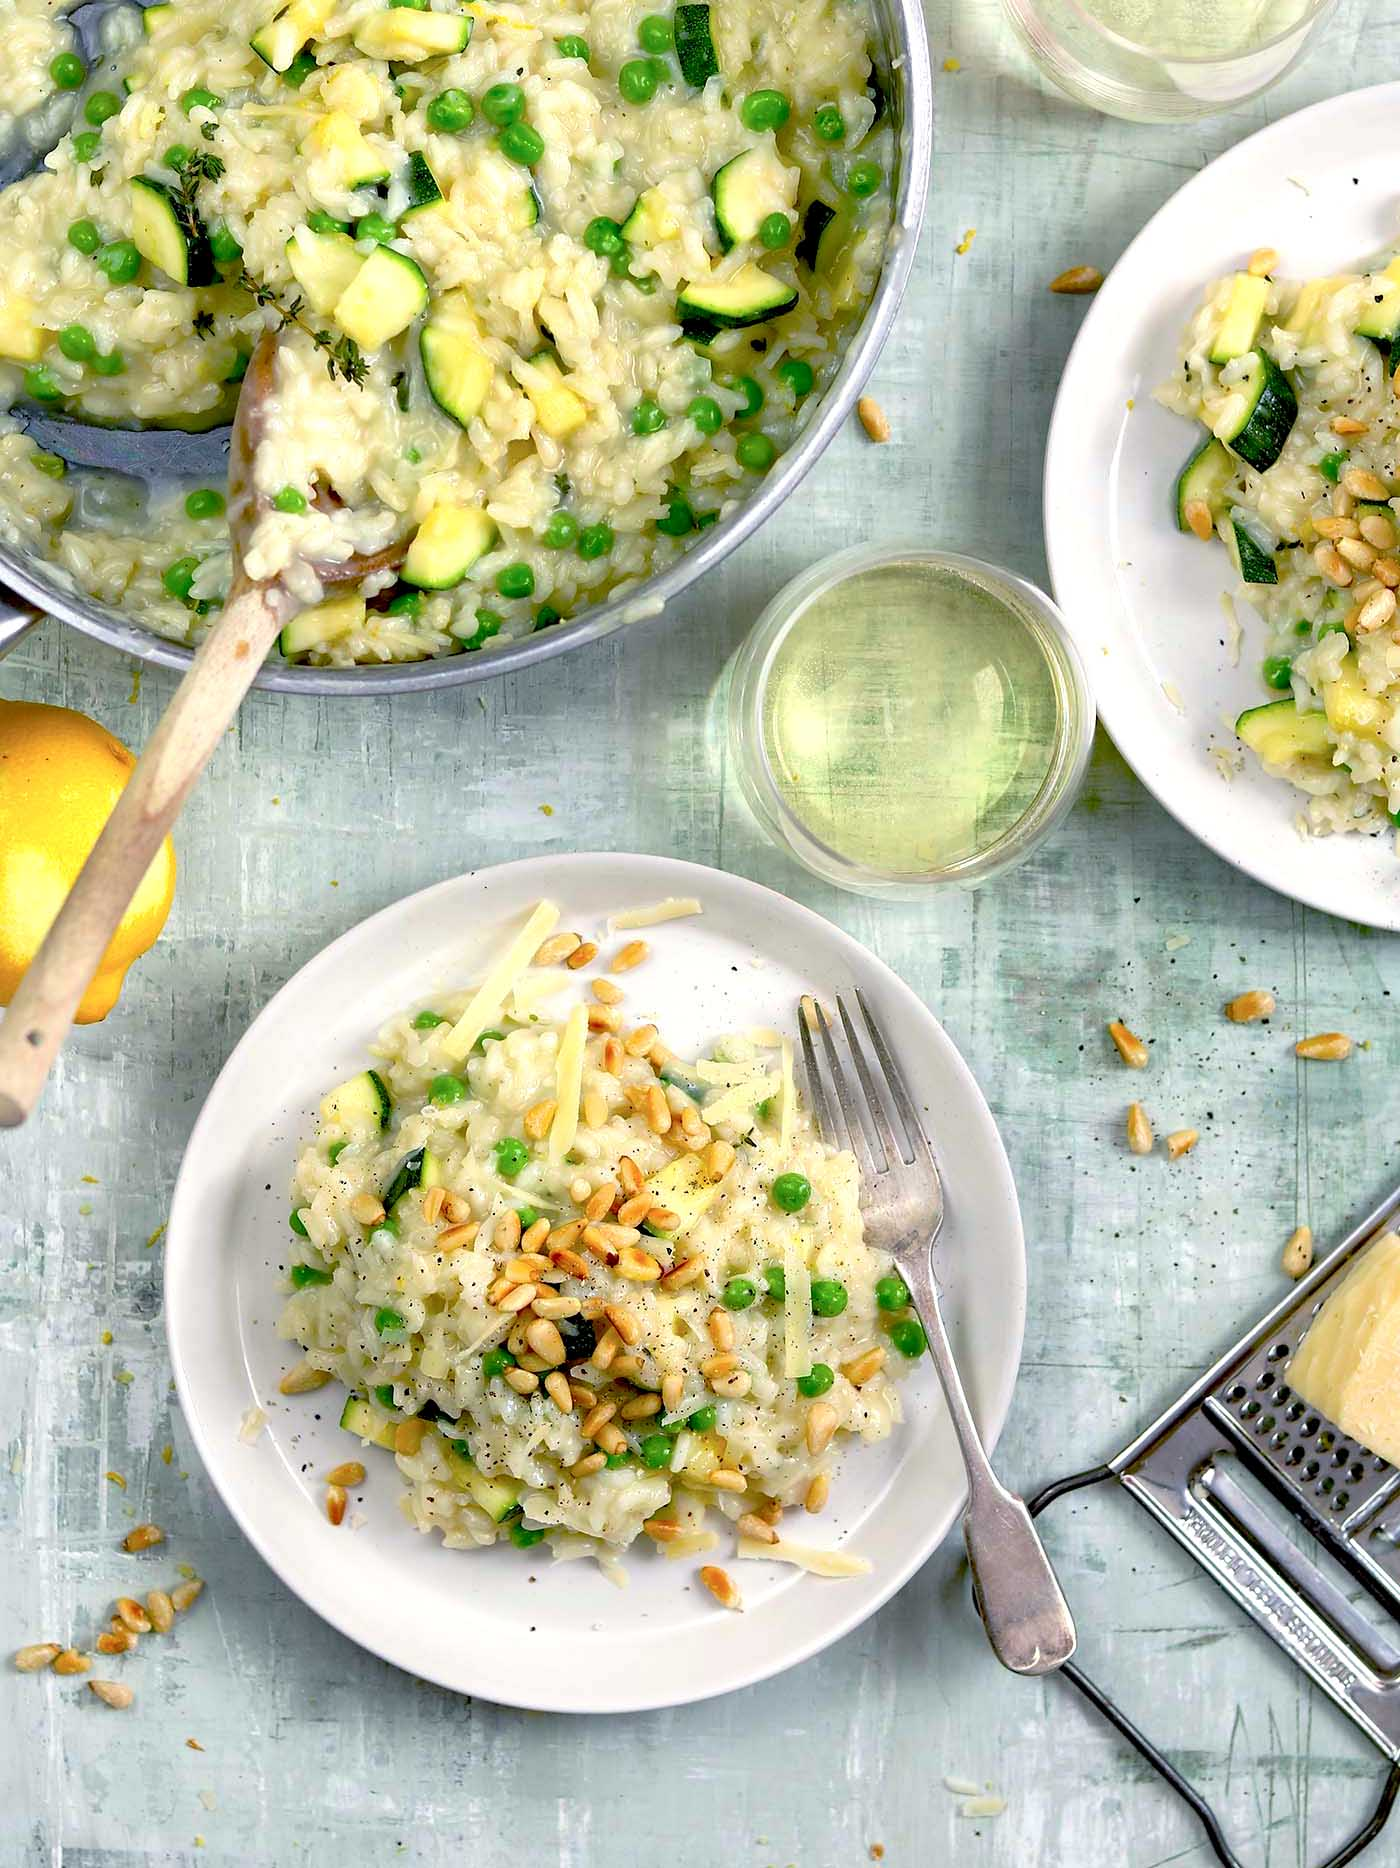 Courgette Risotto with Peas & Lemon, pine nuts and parmesan shavings